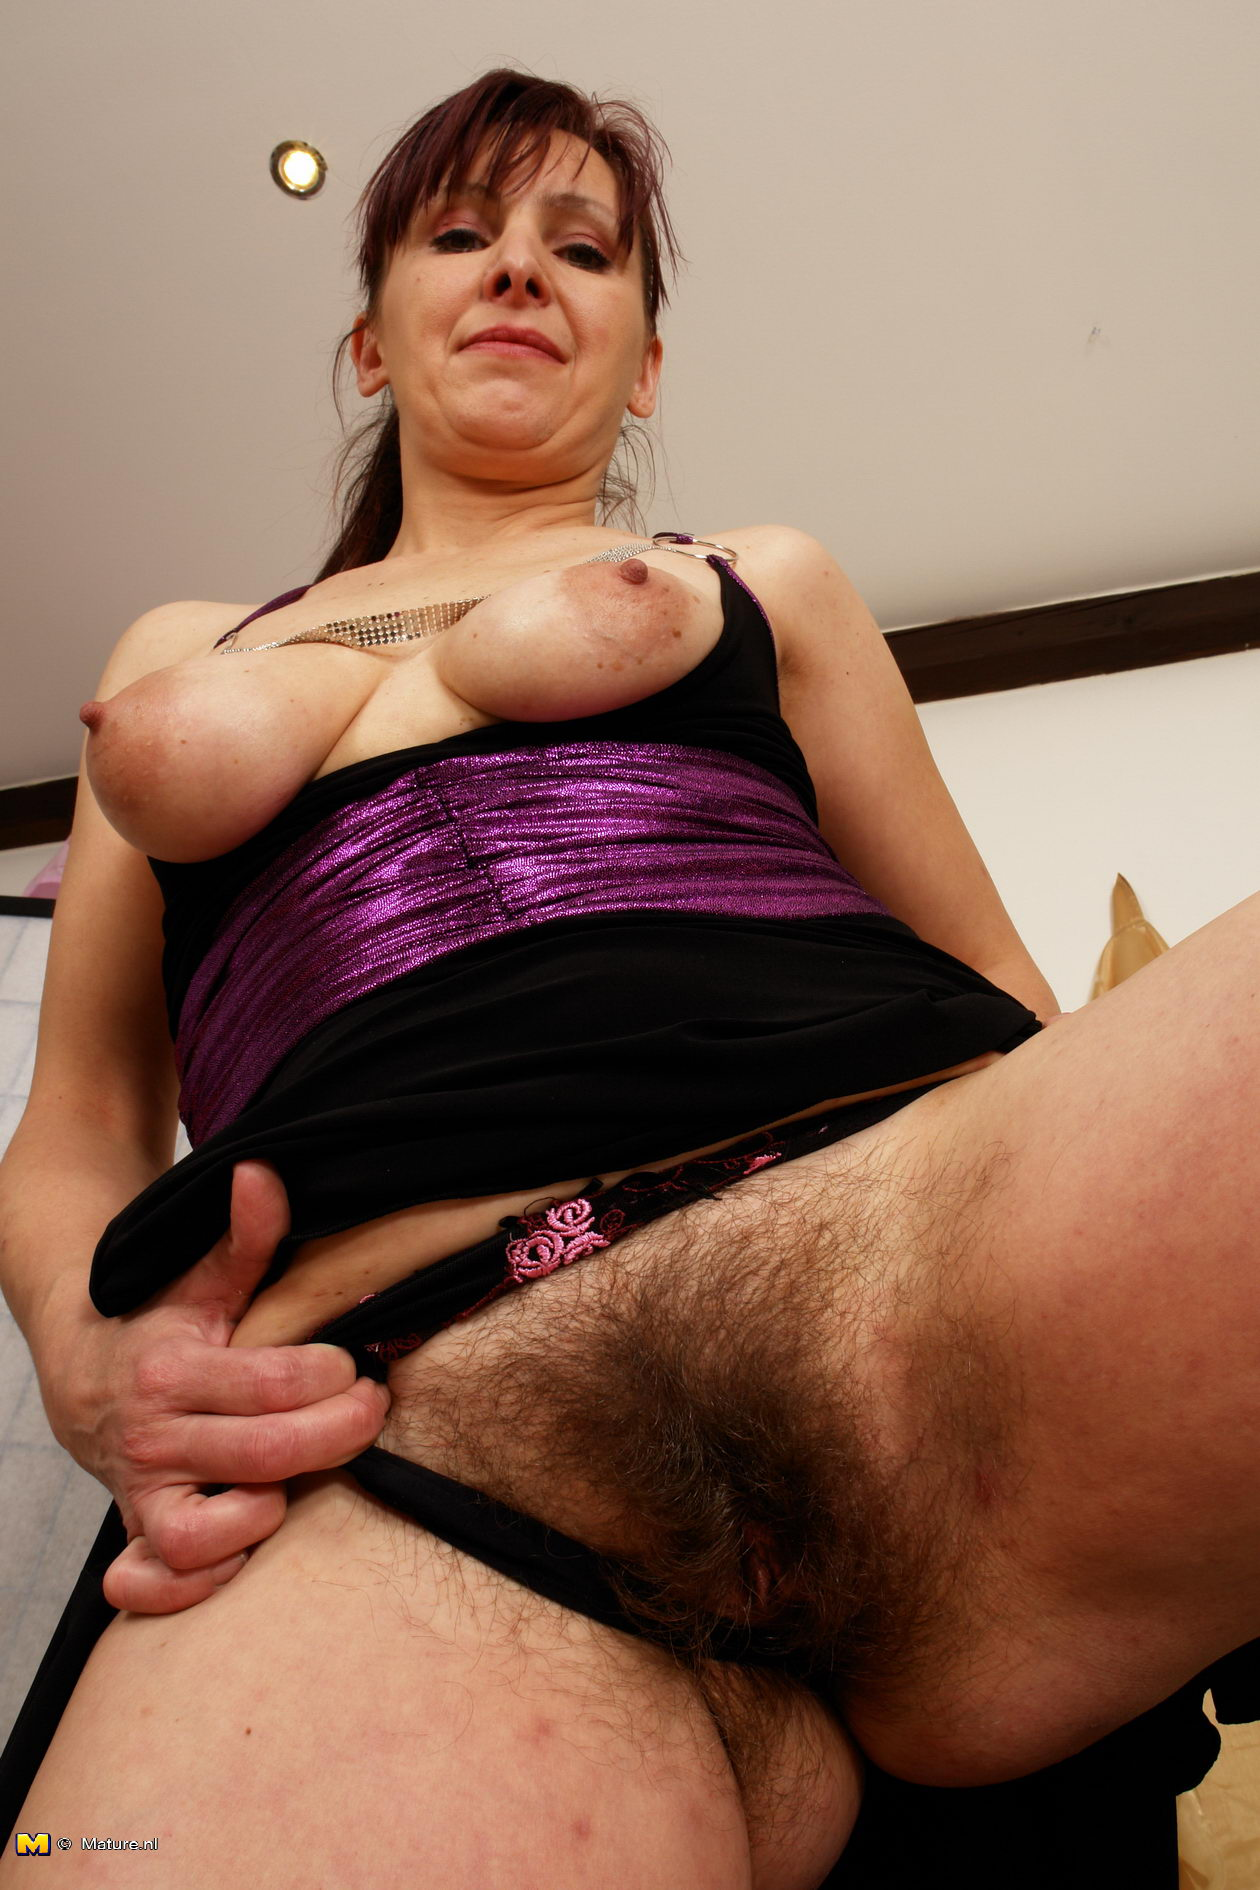 Hairy milfs atkingdom tumblr right! Idea